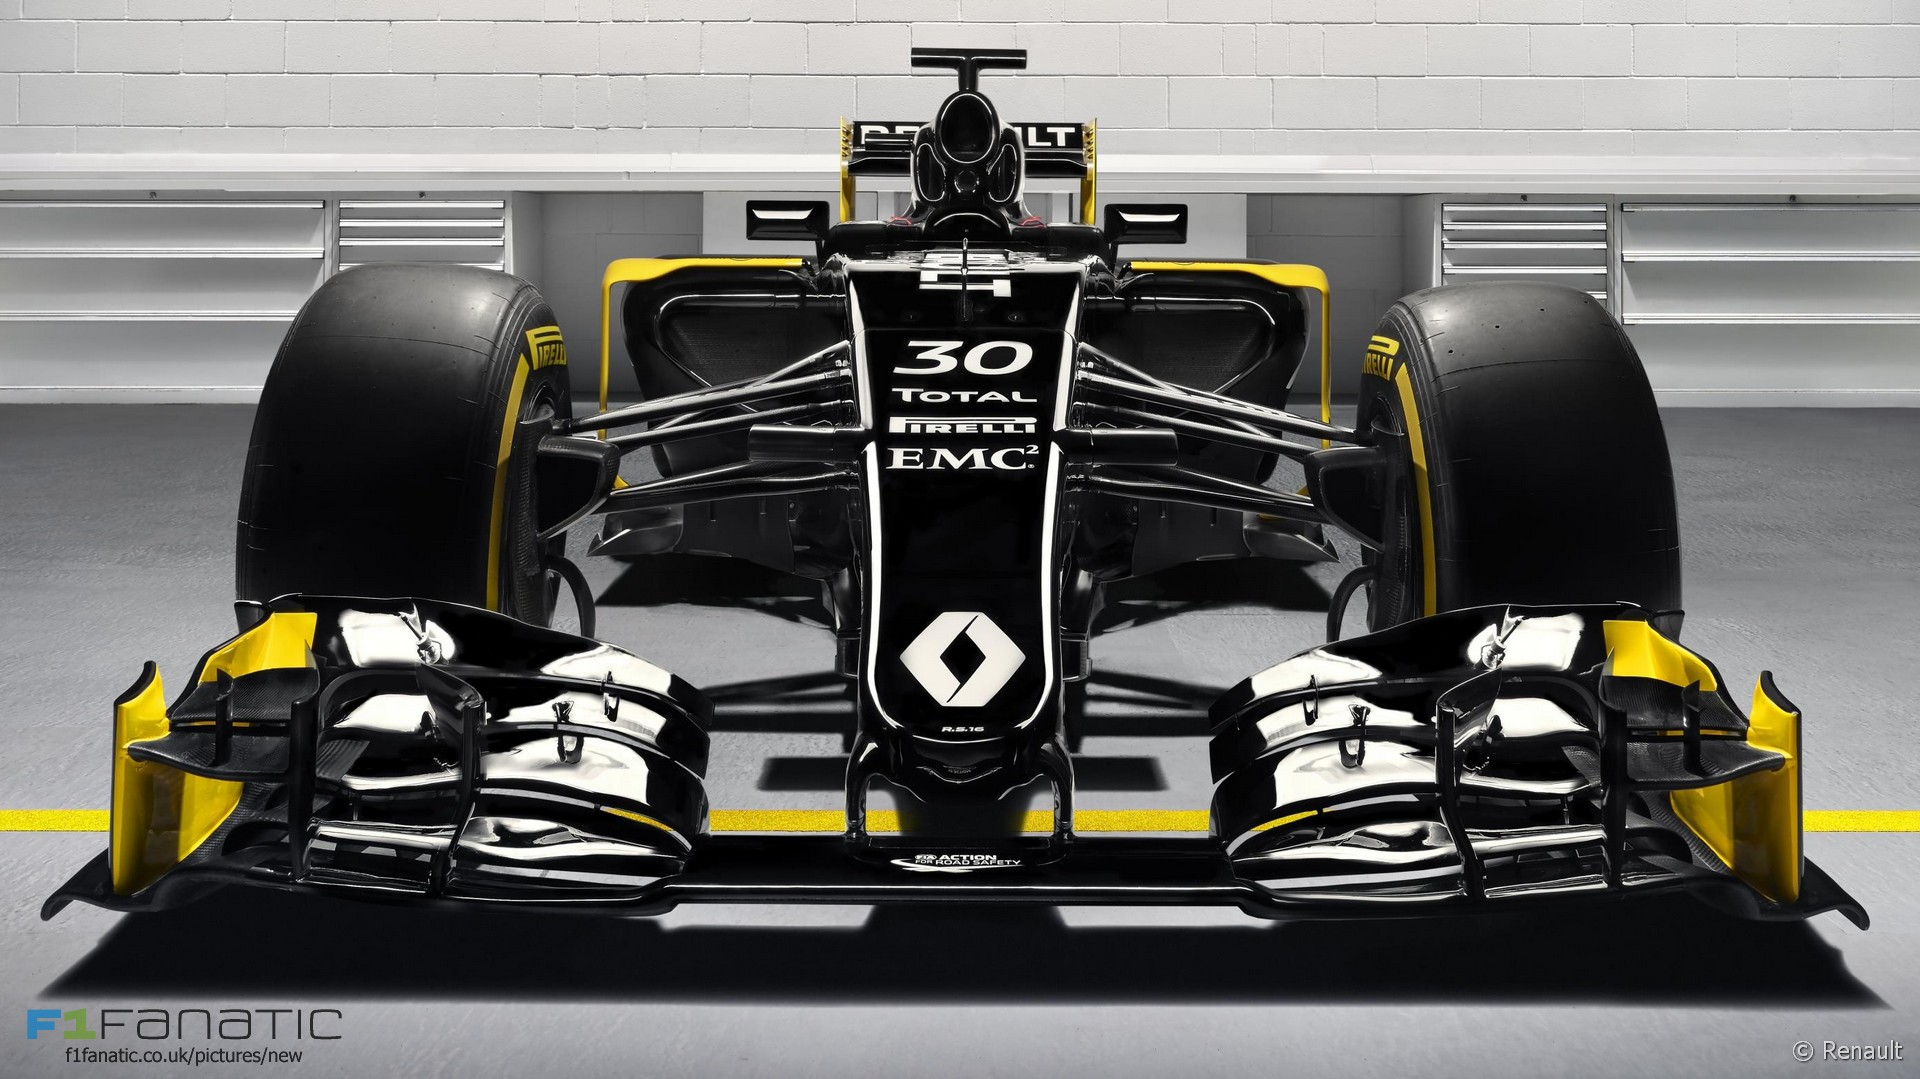 Renault's F1 cars and liveries in pictures, 1977-2016 · F1 Fanatic